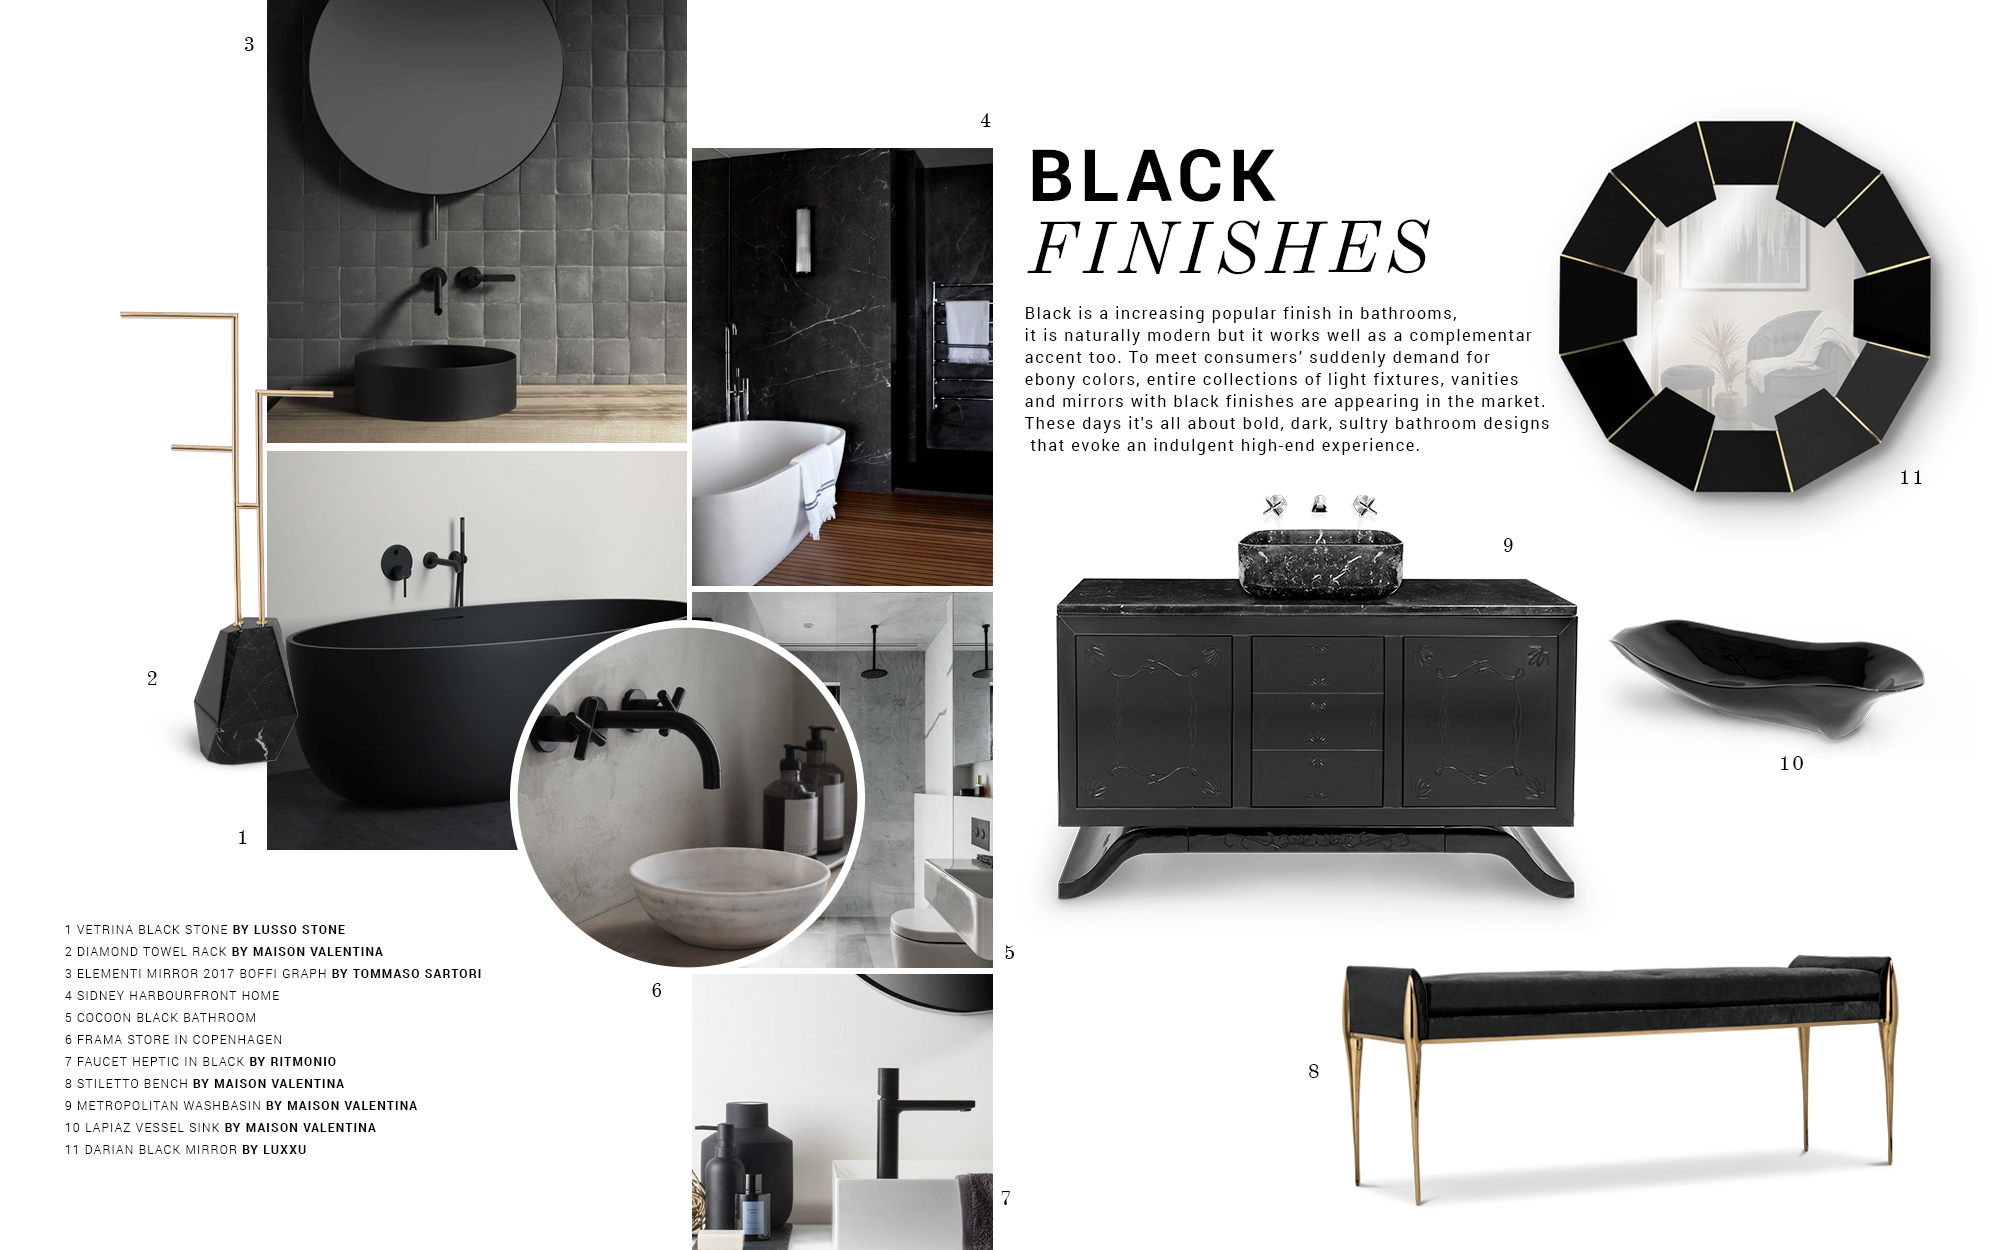 Bathroom Trends: Black Finishes bathroom trend Bathroom Trends: Black Finishes moodboard trends maison valentina black finishes